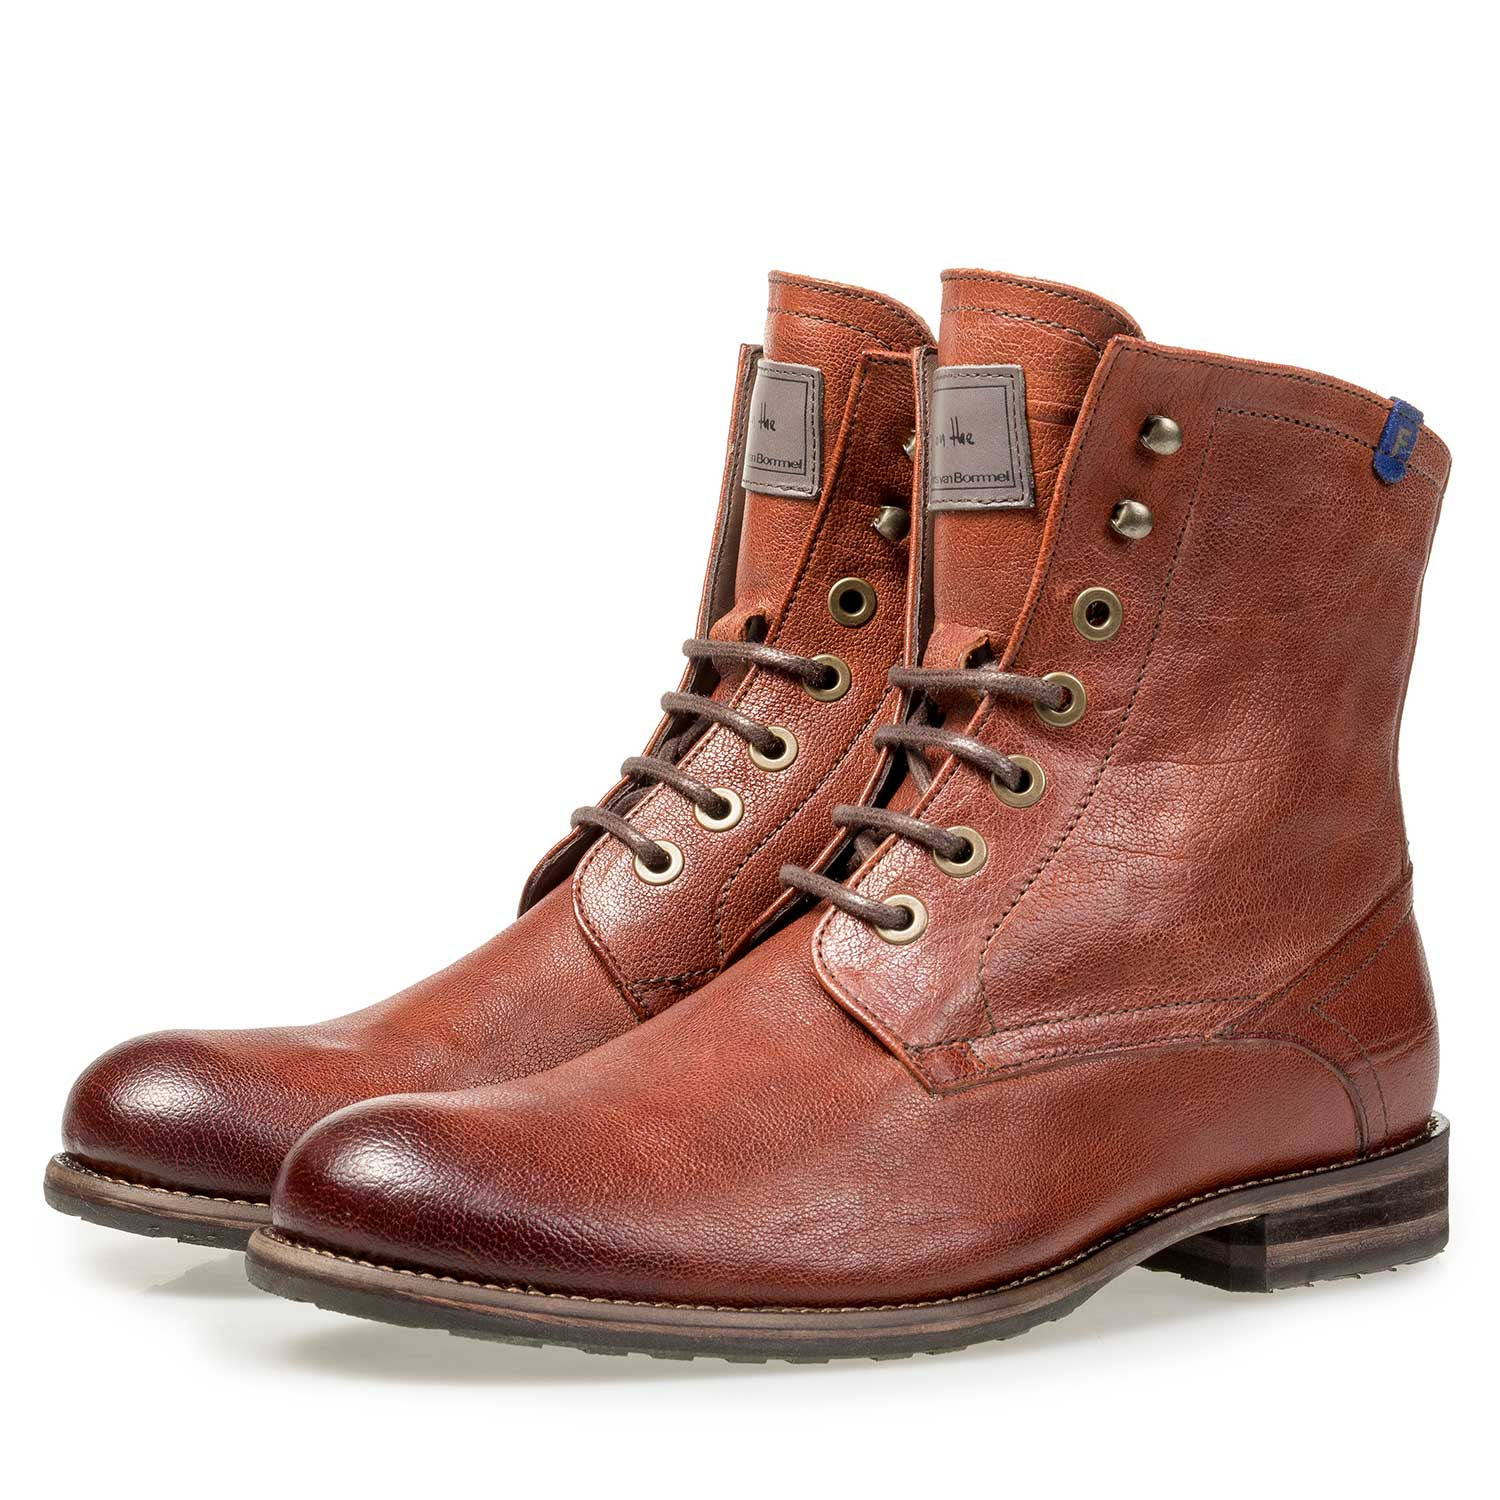 10751/14 - Wool lined cognac-coloured leather lace boot